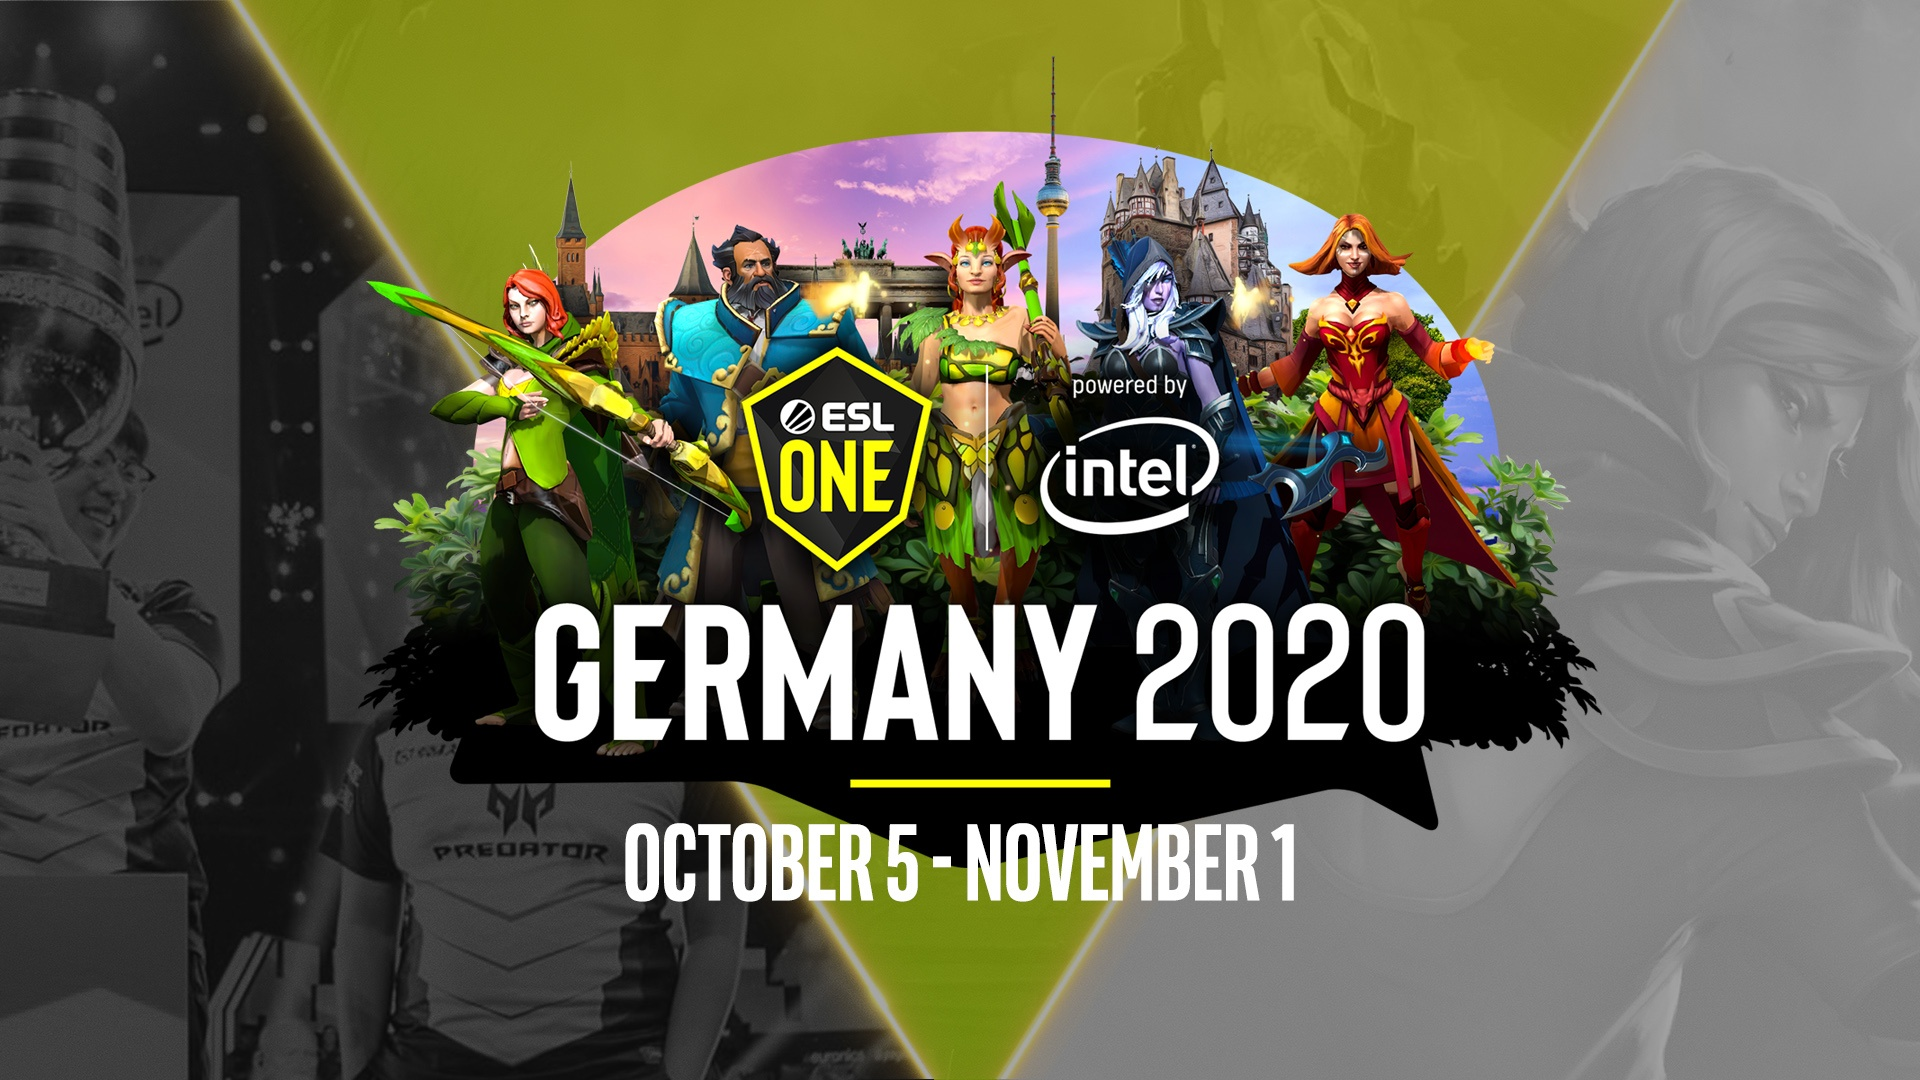 ESL One Gemrnay : OG is the 3rd team to qualify for playoffs of ESL One Germany 2020